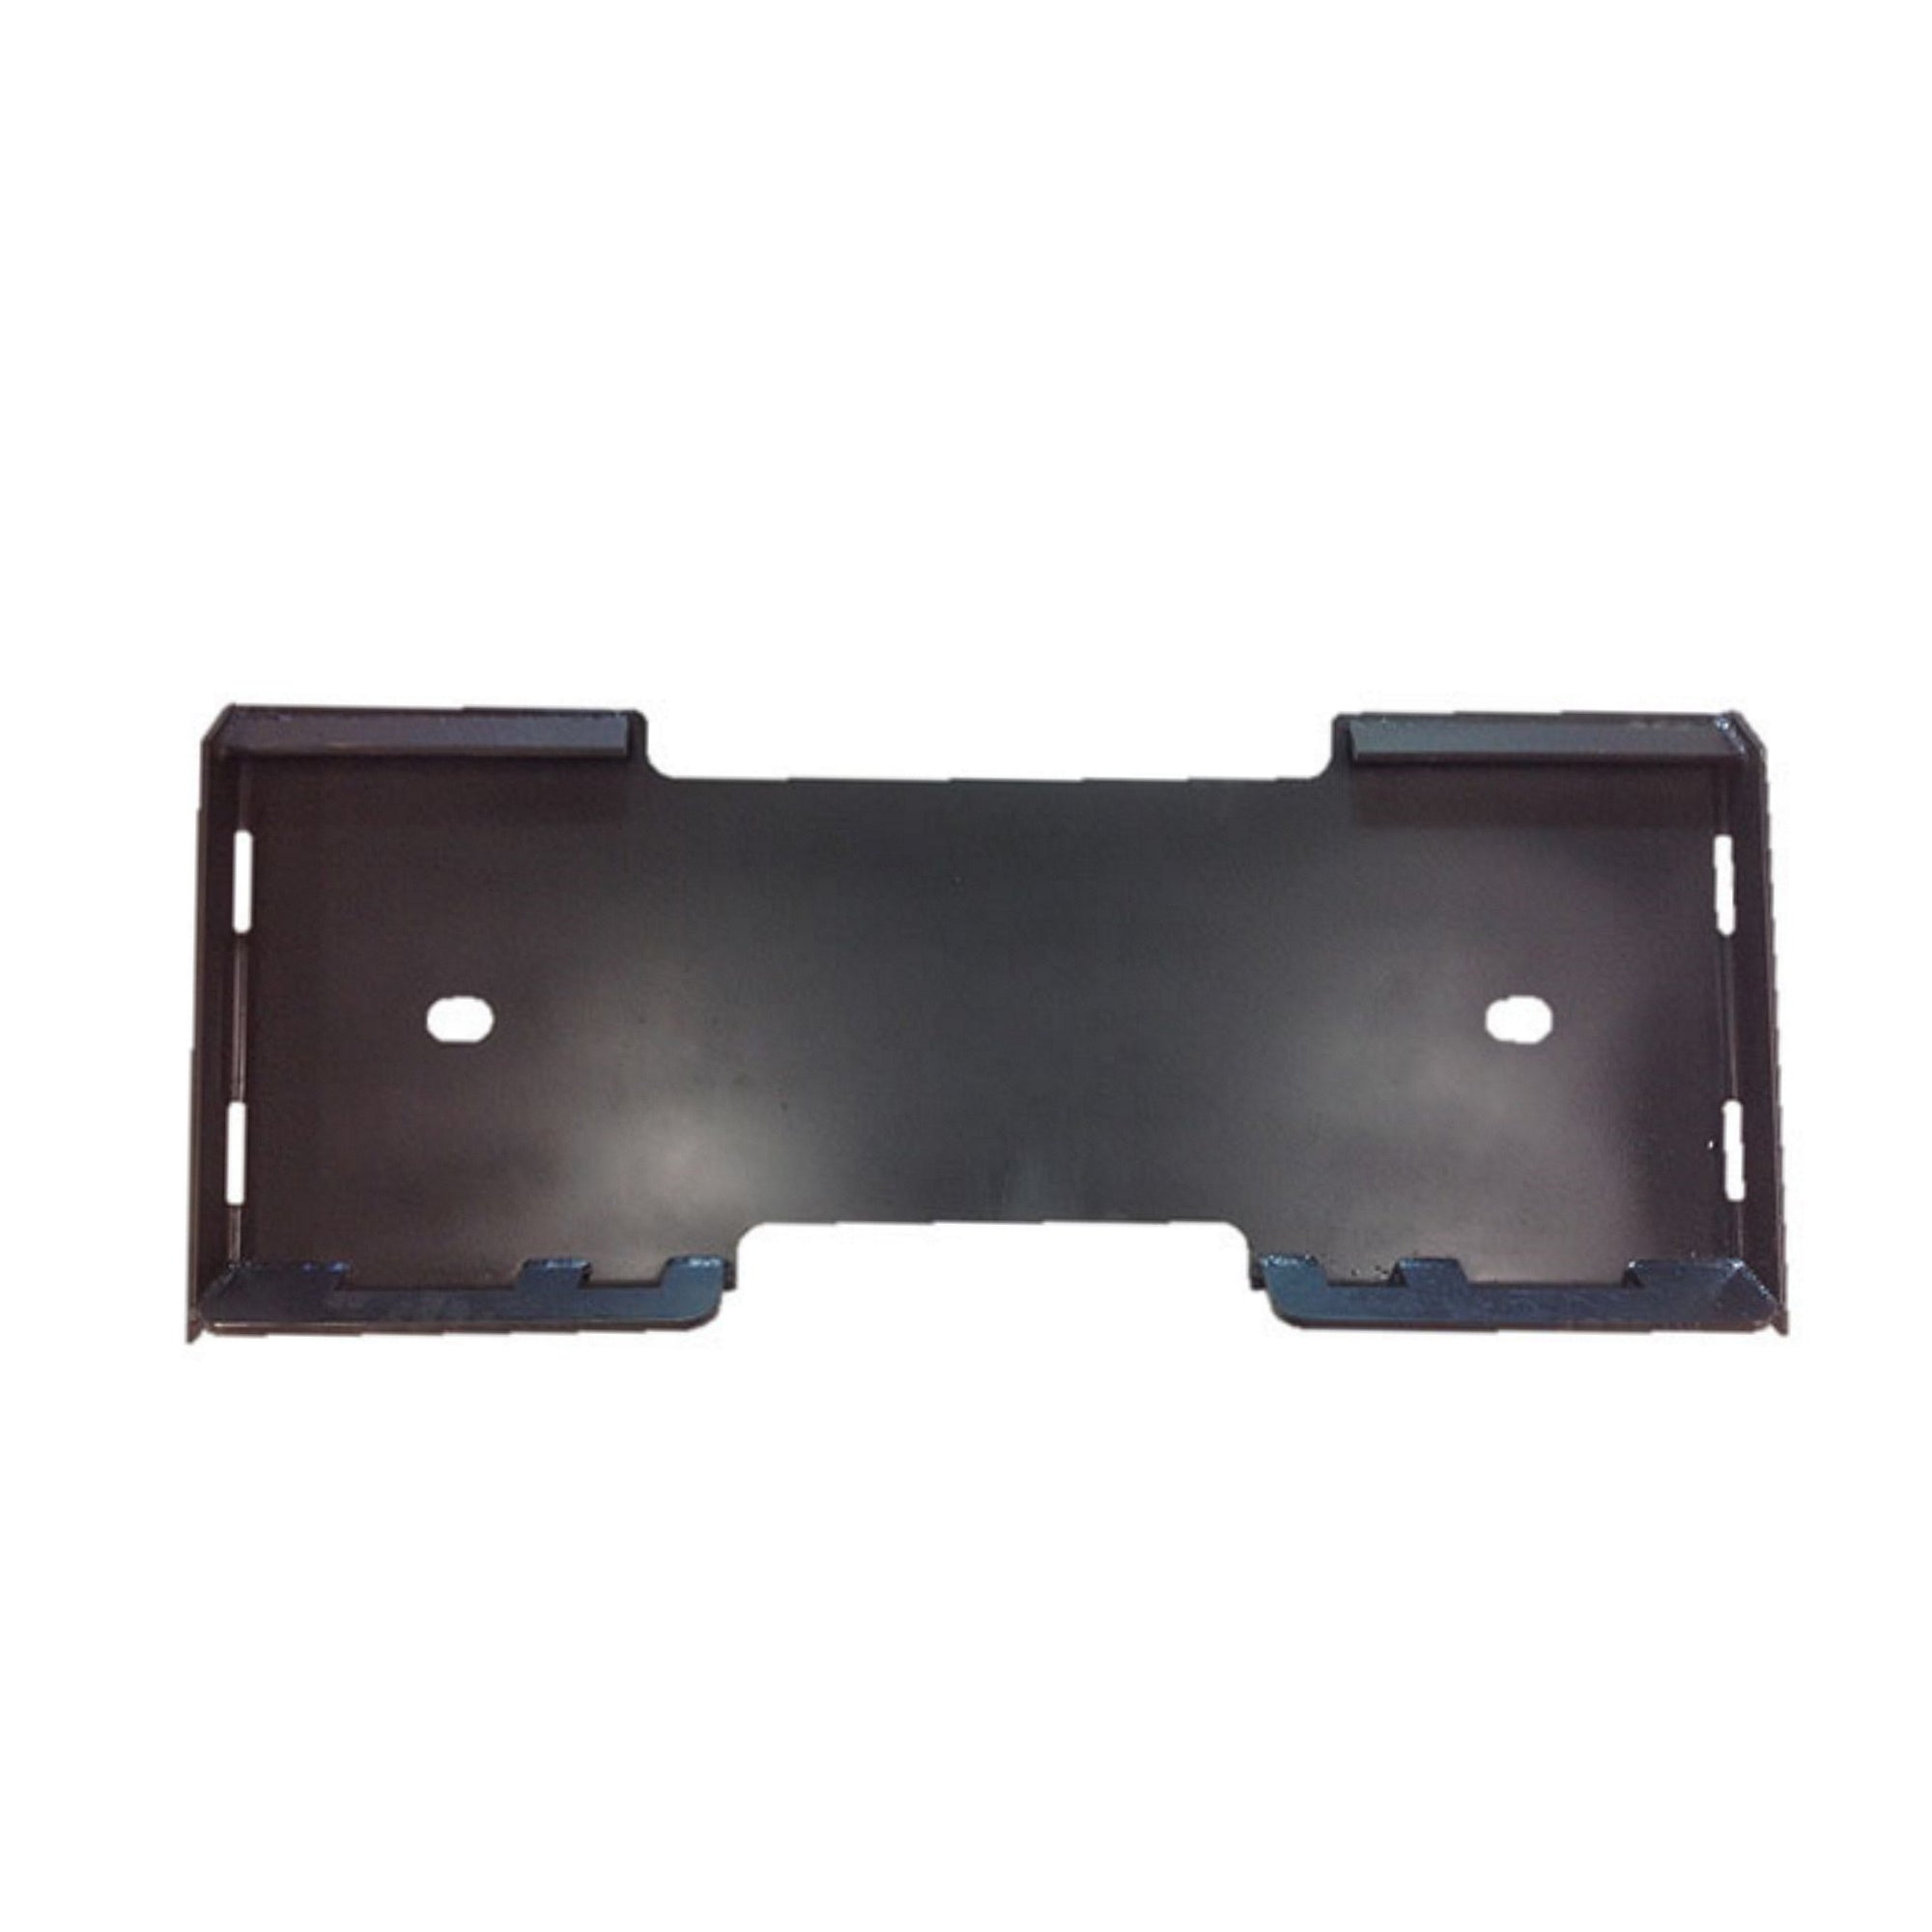 NAI Quick Attach Plate